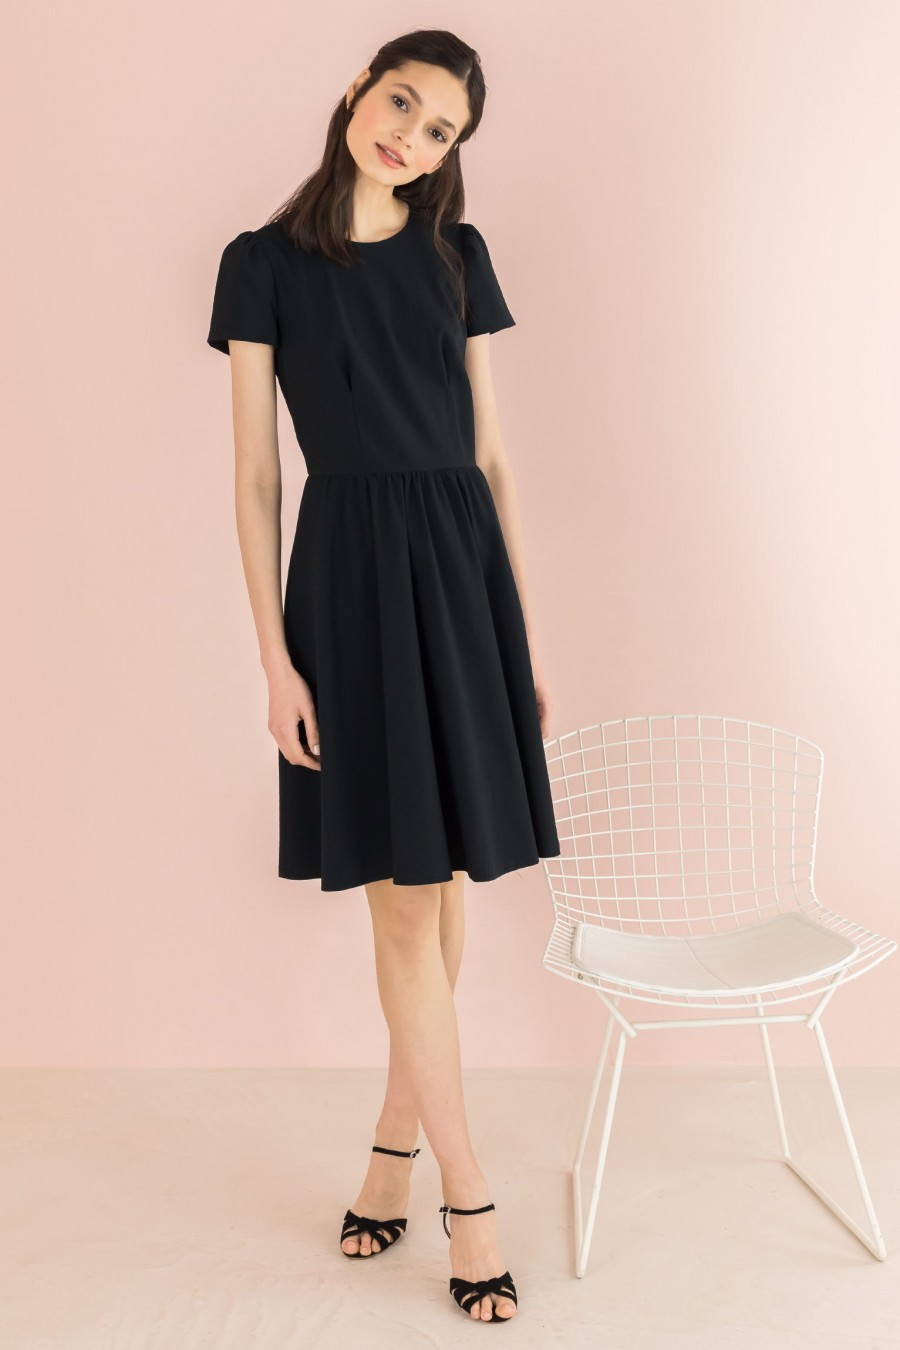 black dress with gathered skirt and short sleeves